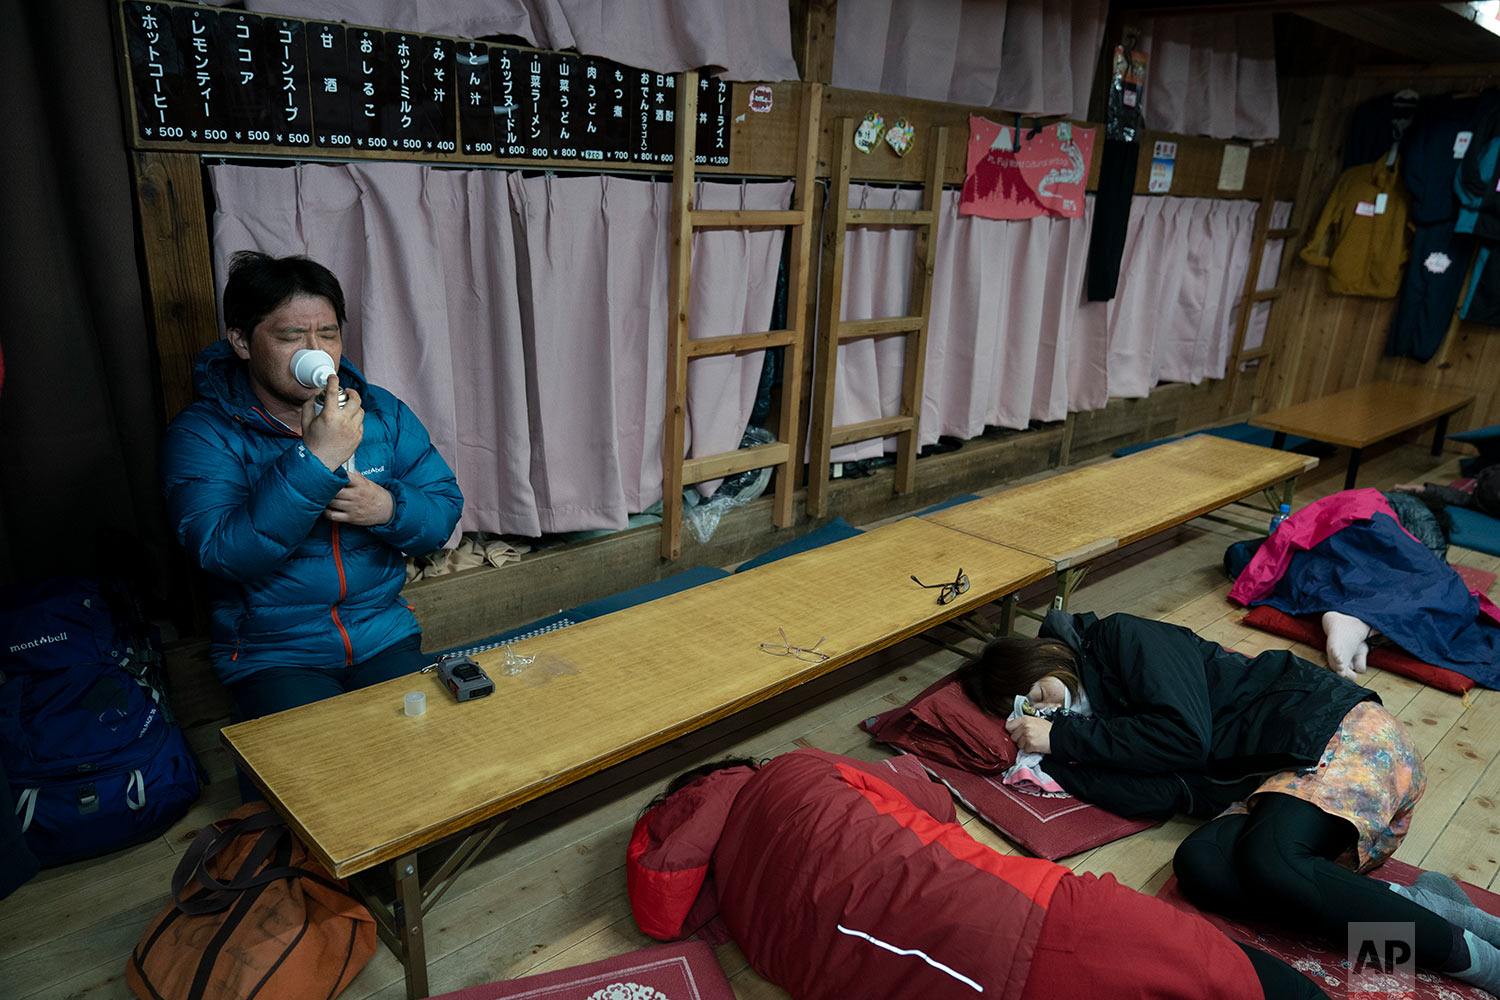 A man inhales oxygen from a can in a mountain hut while getting ready to climb to the summit of Mount Fuji to watch the sunrise, Aug. 3, 2019, in Japan. (AP Photo/Jae C. Hong)